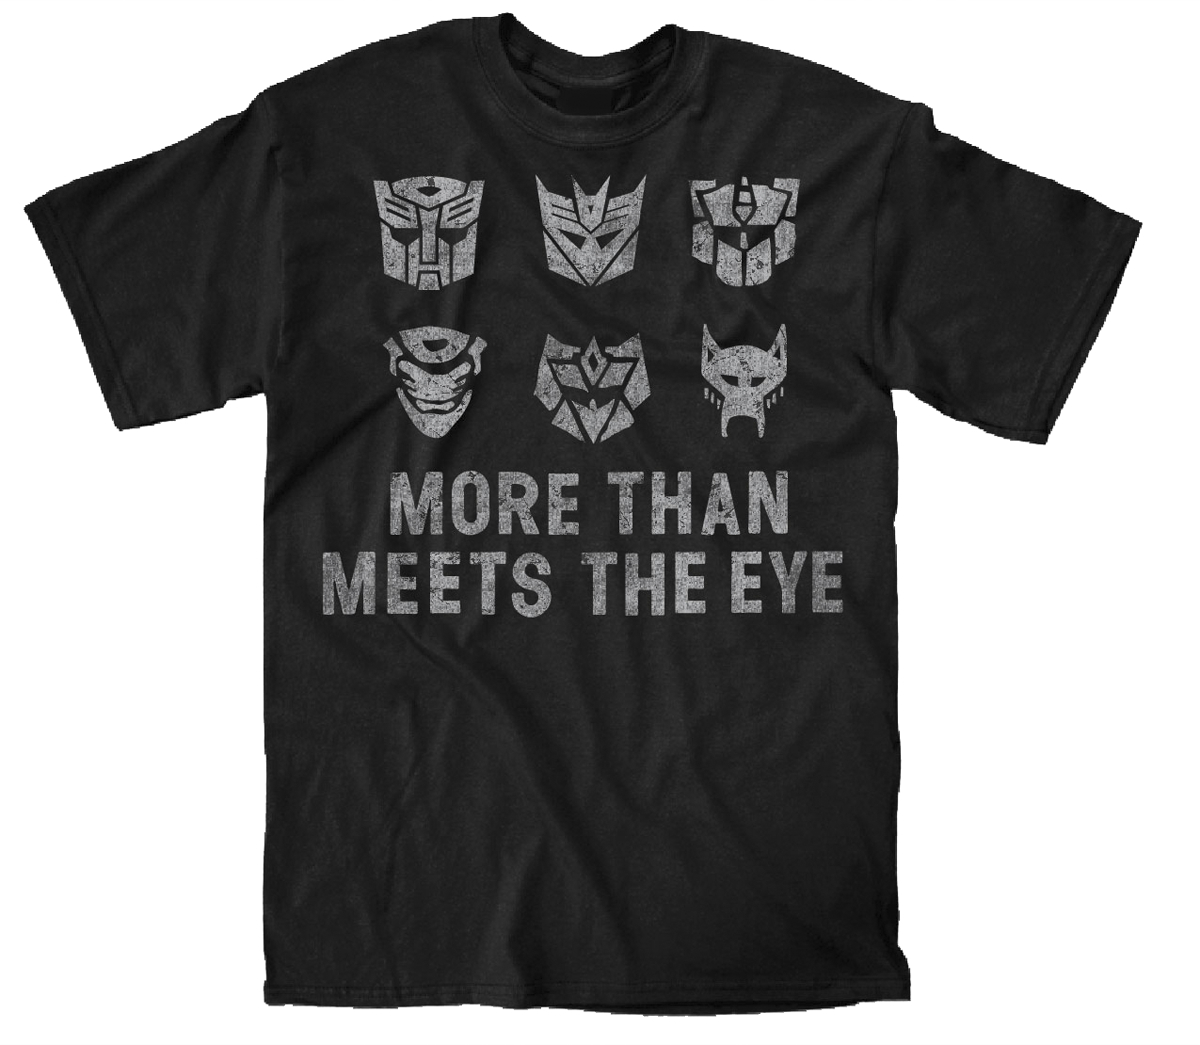 TRANSFORMERS MEETS THE EYE BLK T/S XXL